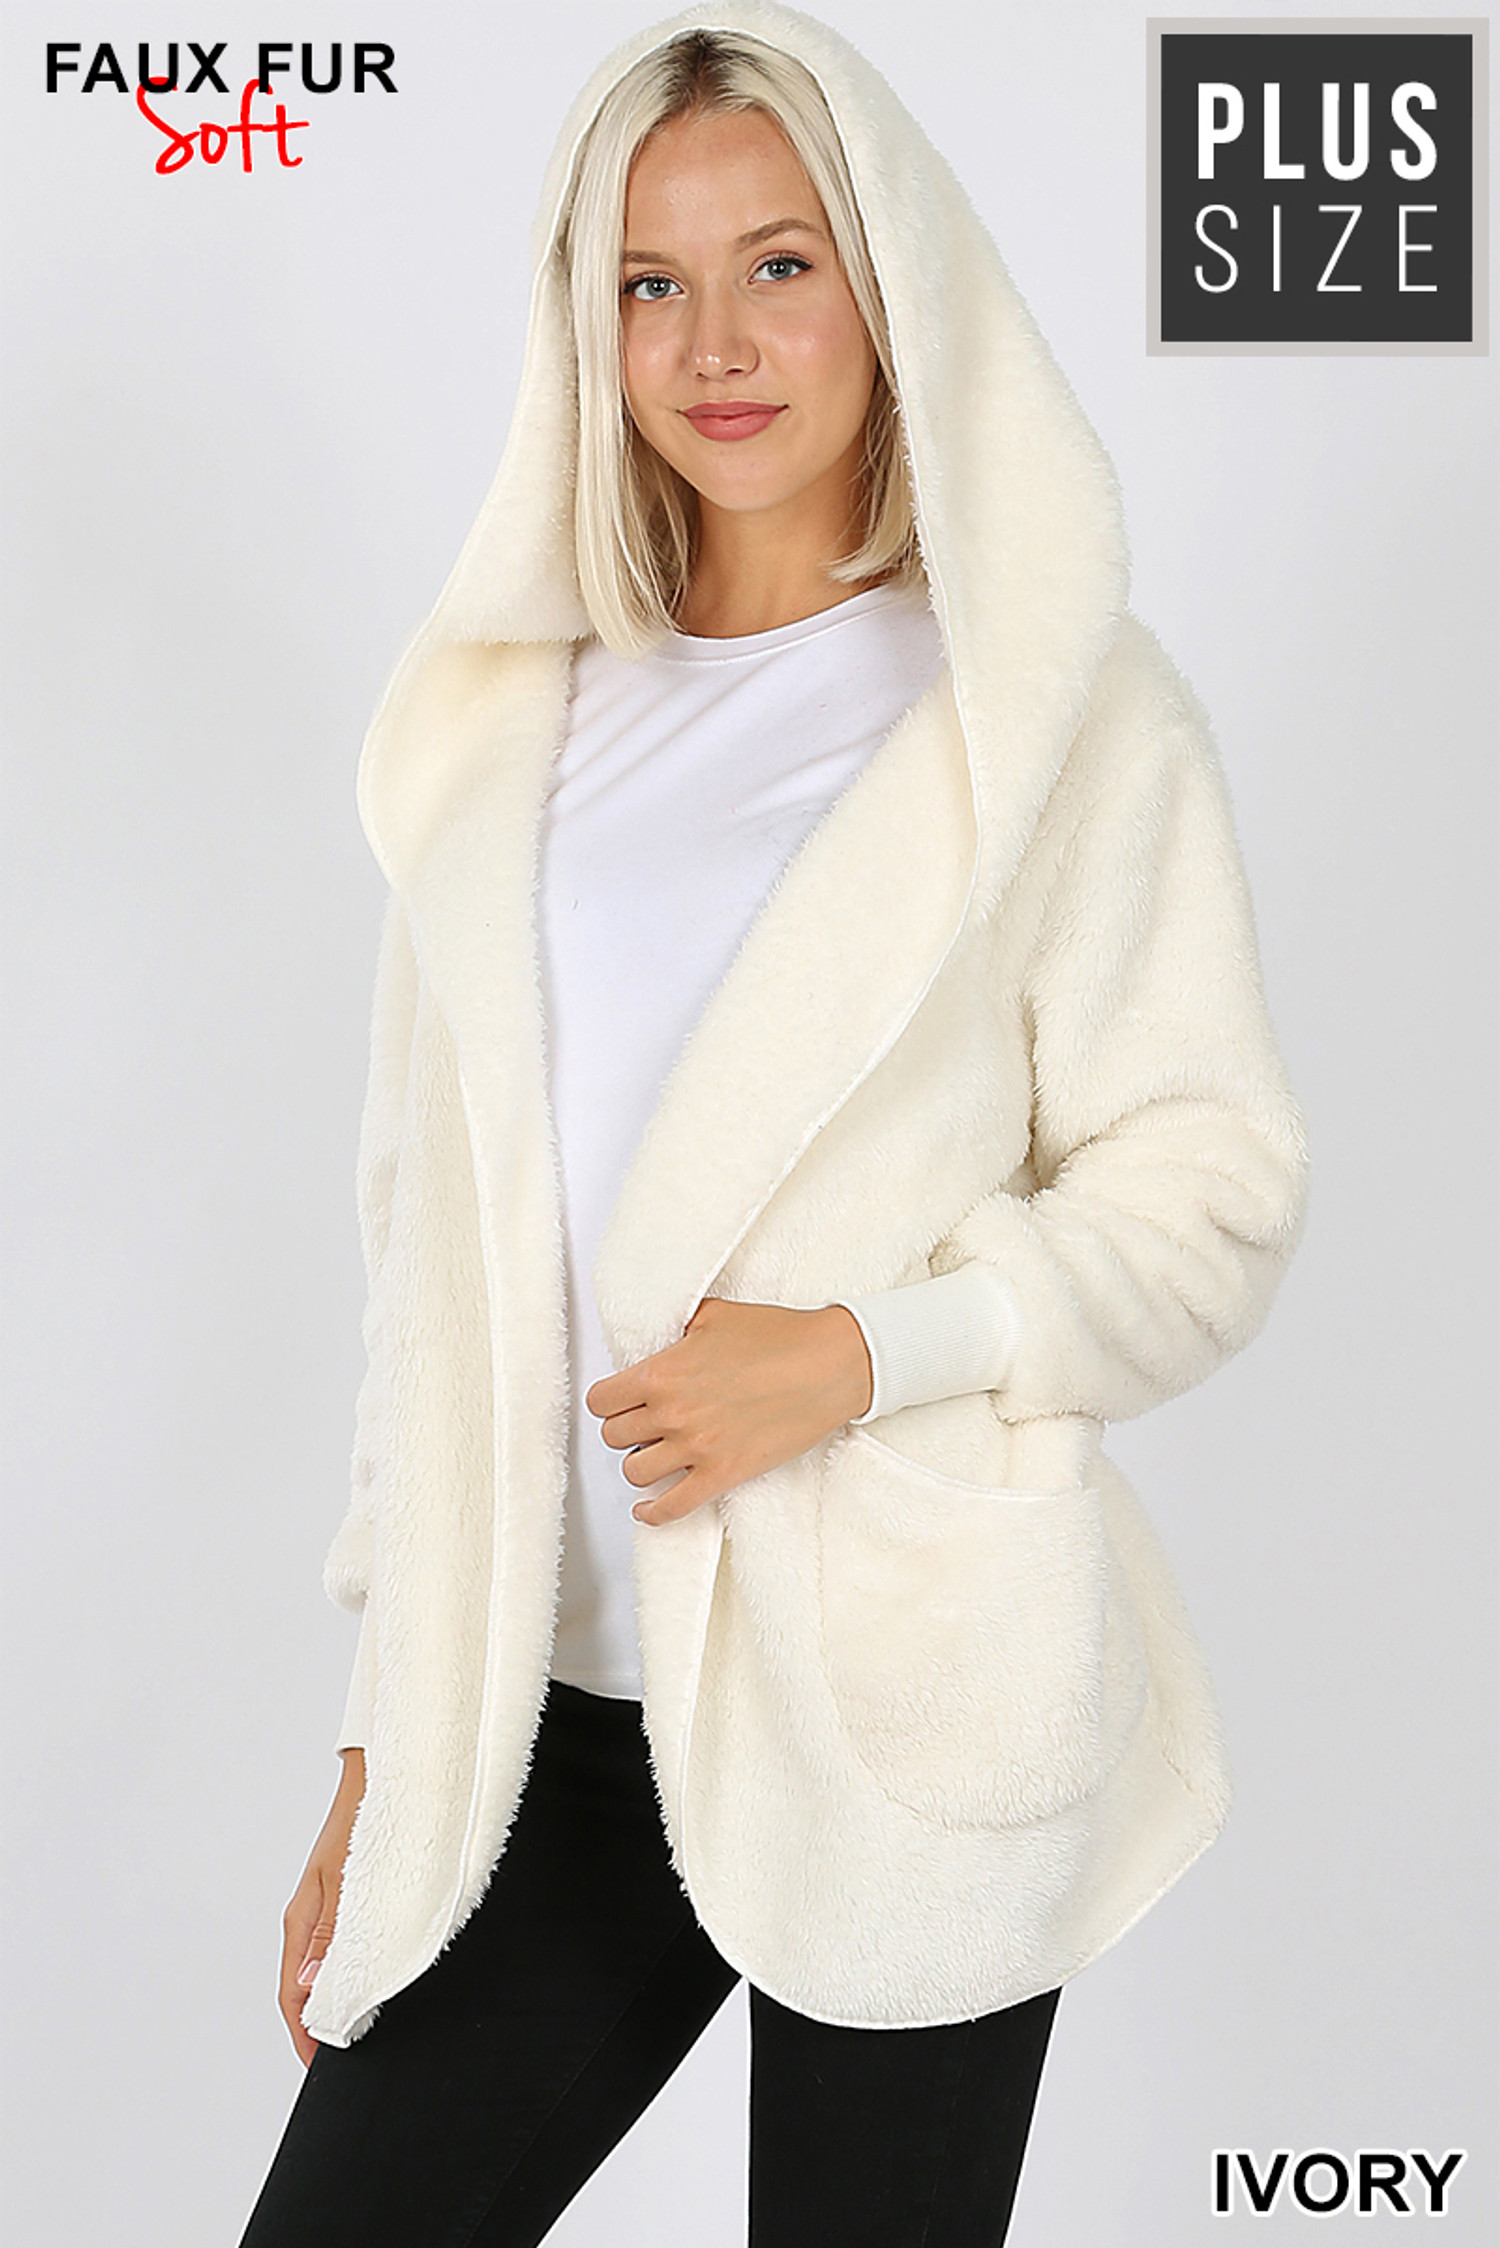 Front Image of Ivory Faux Fur Hooded Cocoon Plus Size Jacket with Pockets showing hood up